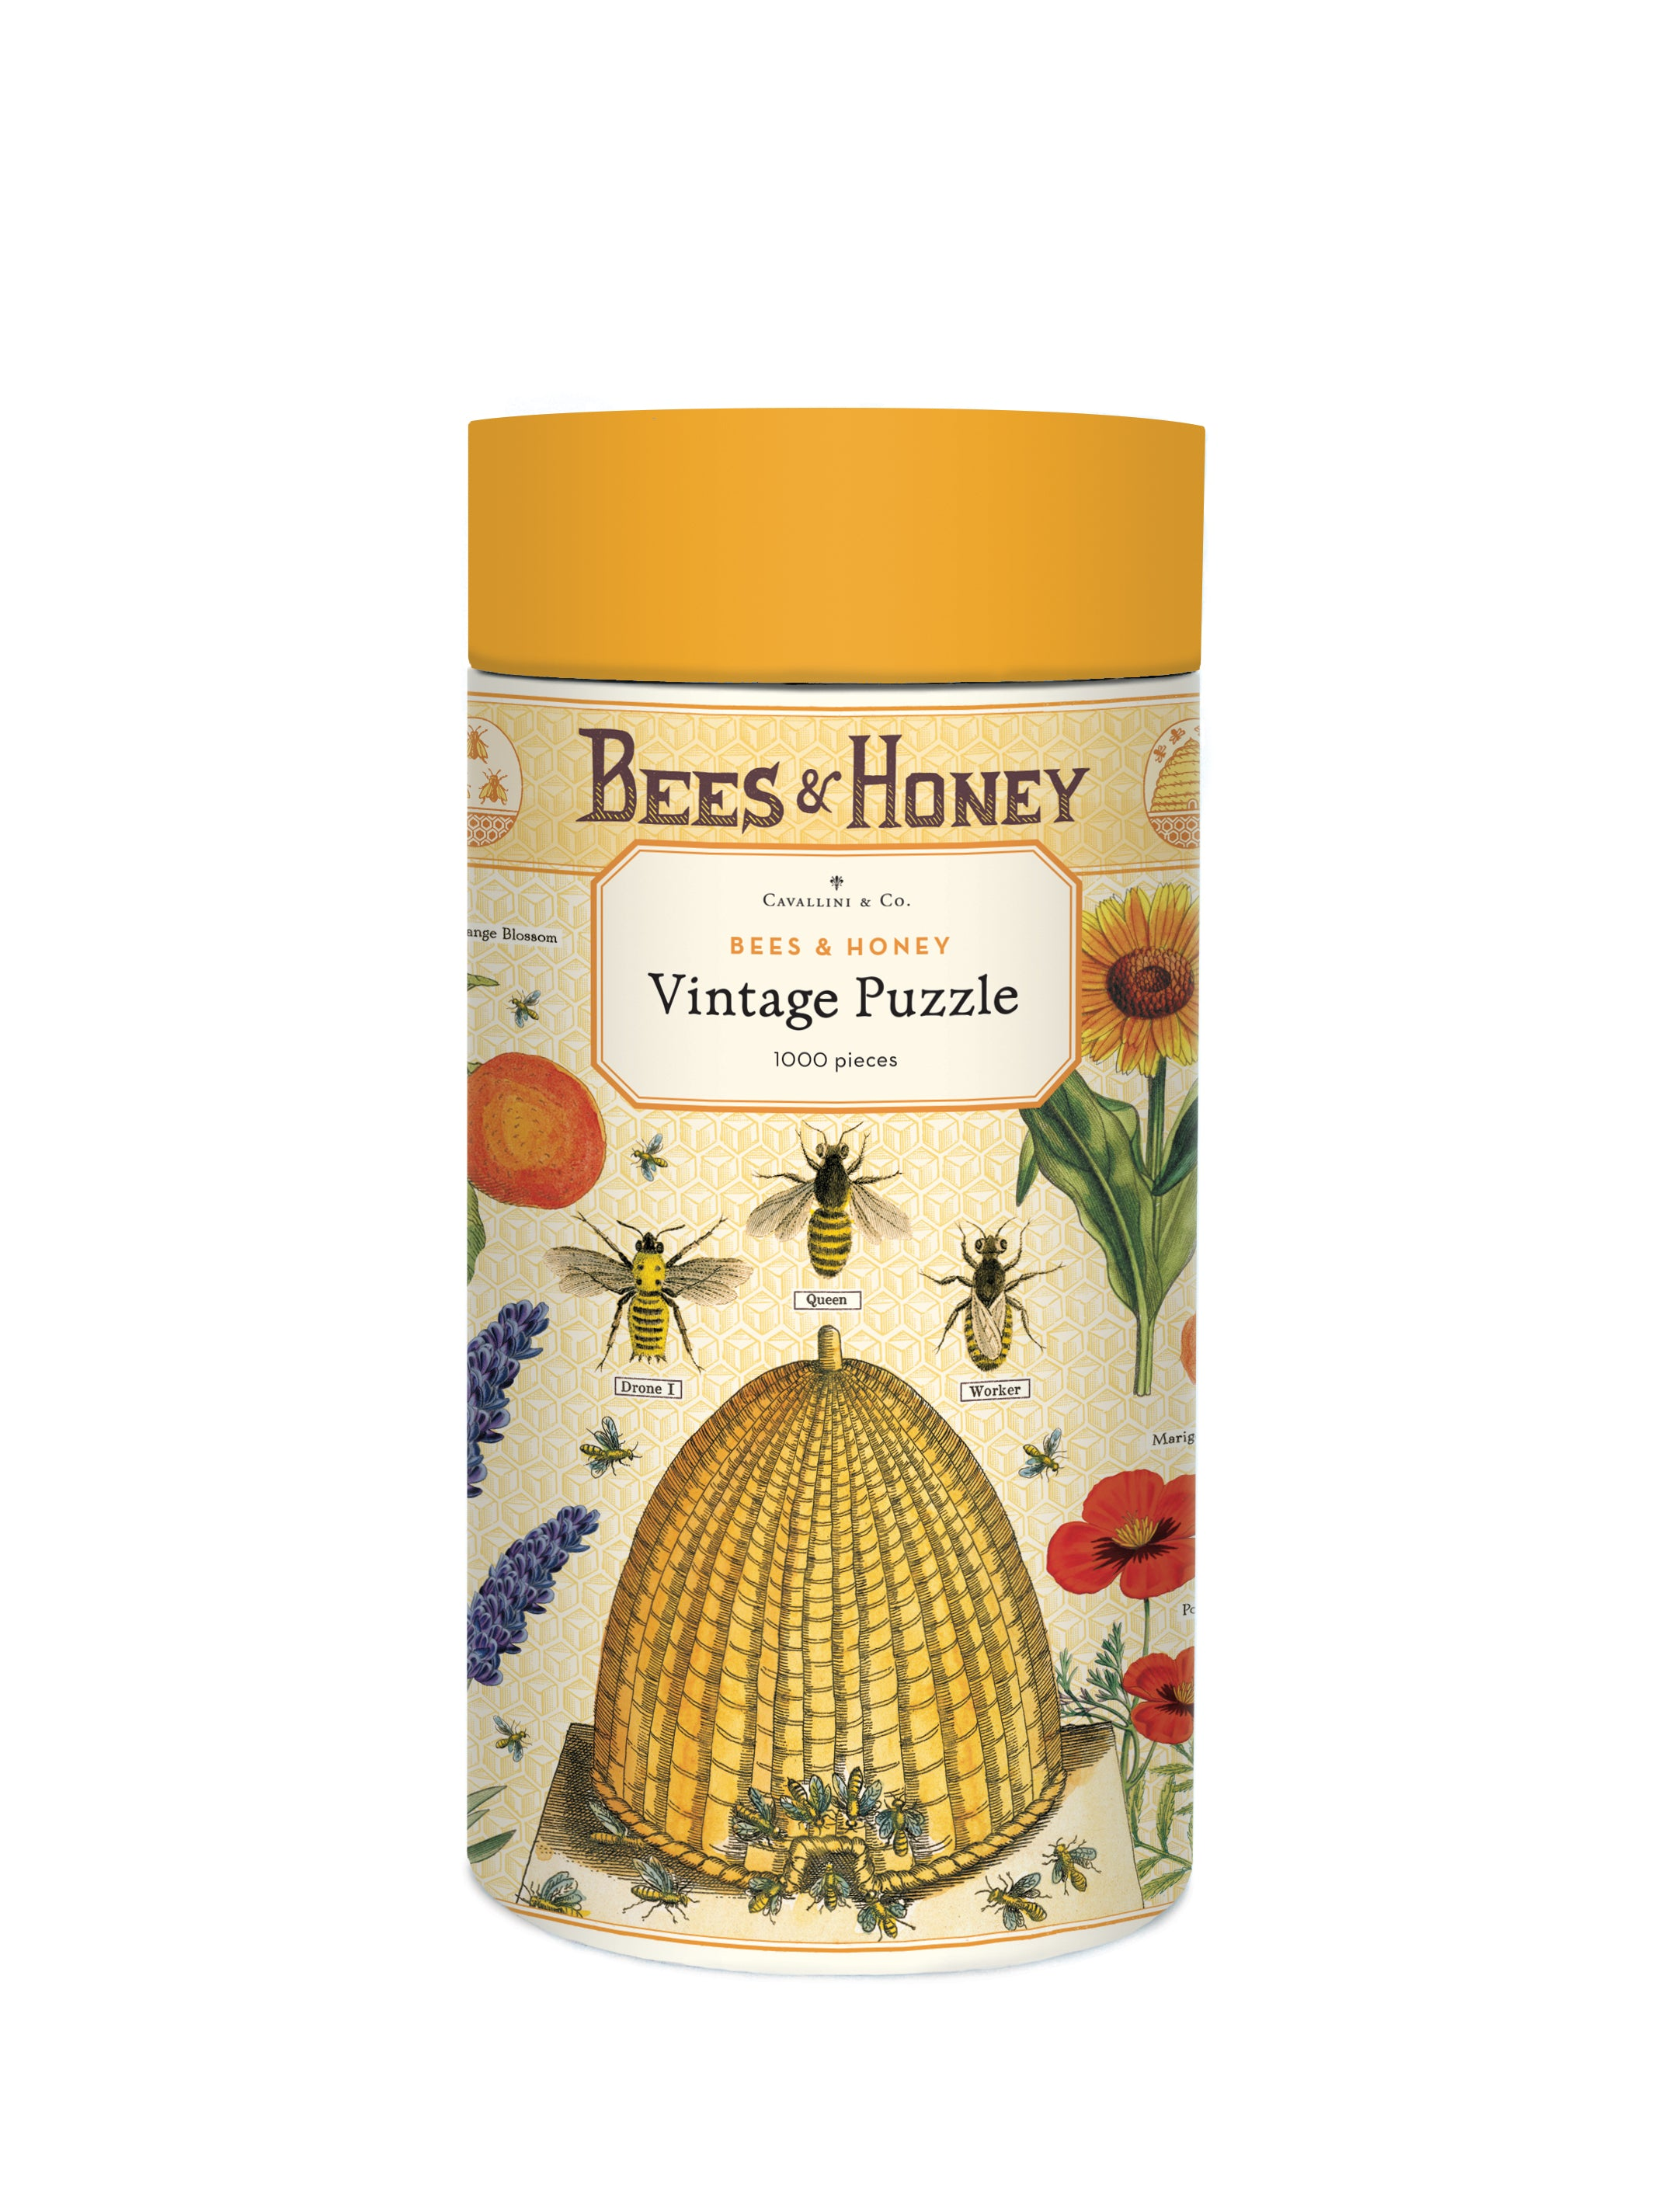 1000 Piece Cavallini Bees & Honey Puzzle